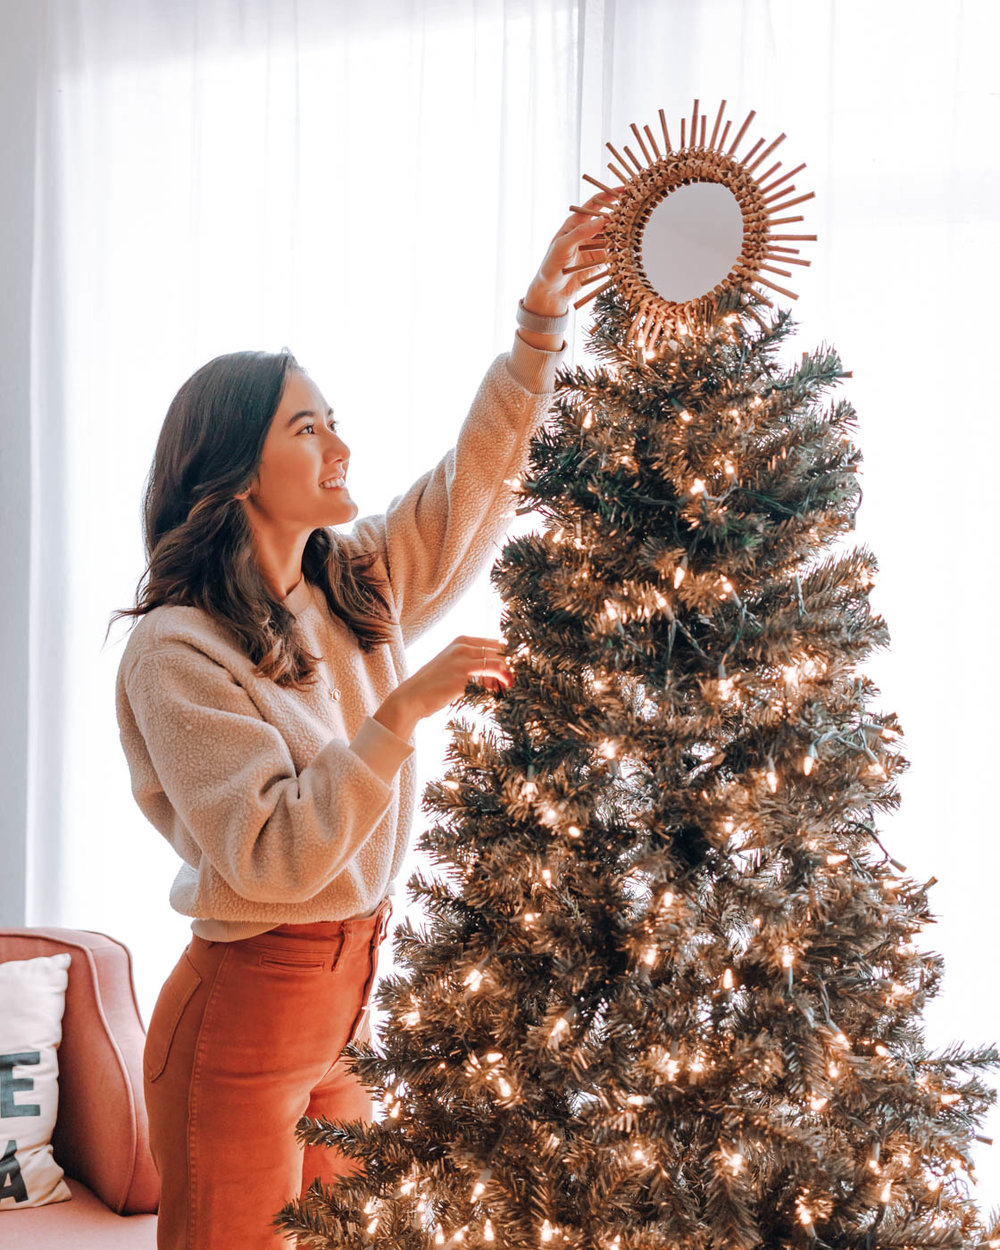 Sustainable Holiday Gift Guide for a More Mindful (& Less Wasteful) Season | Find all my favorite gift ideas for clean beauty, conscious fashion, sustainable home, digital products, experiences, and more! | Om & the City Blog #OmAndTheCity #sustainablegifts #minimalism #lowwaste #holiday #Christmas #giftguide #ecofriendlygifts #lowwastegifts #lowwasteChristmas #sustainable #mindfulness #mindfulgifts